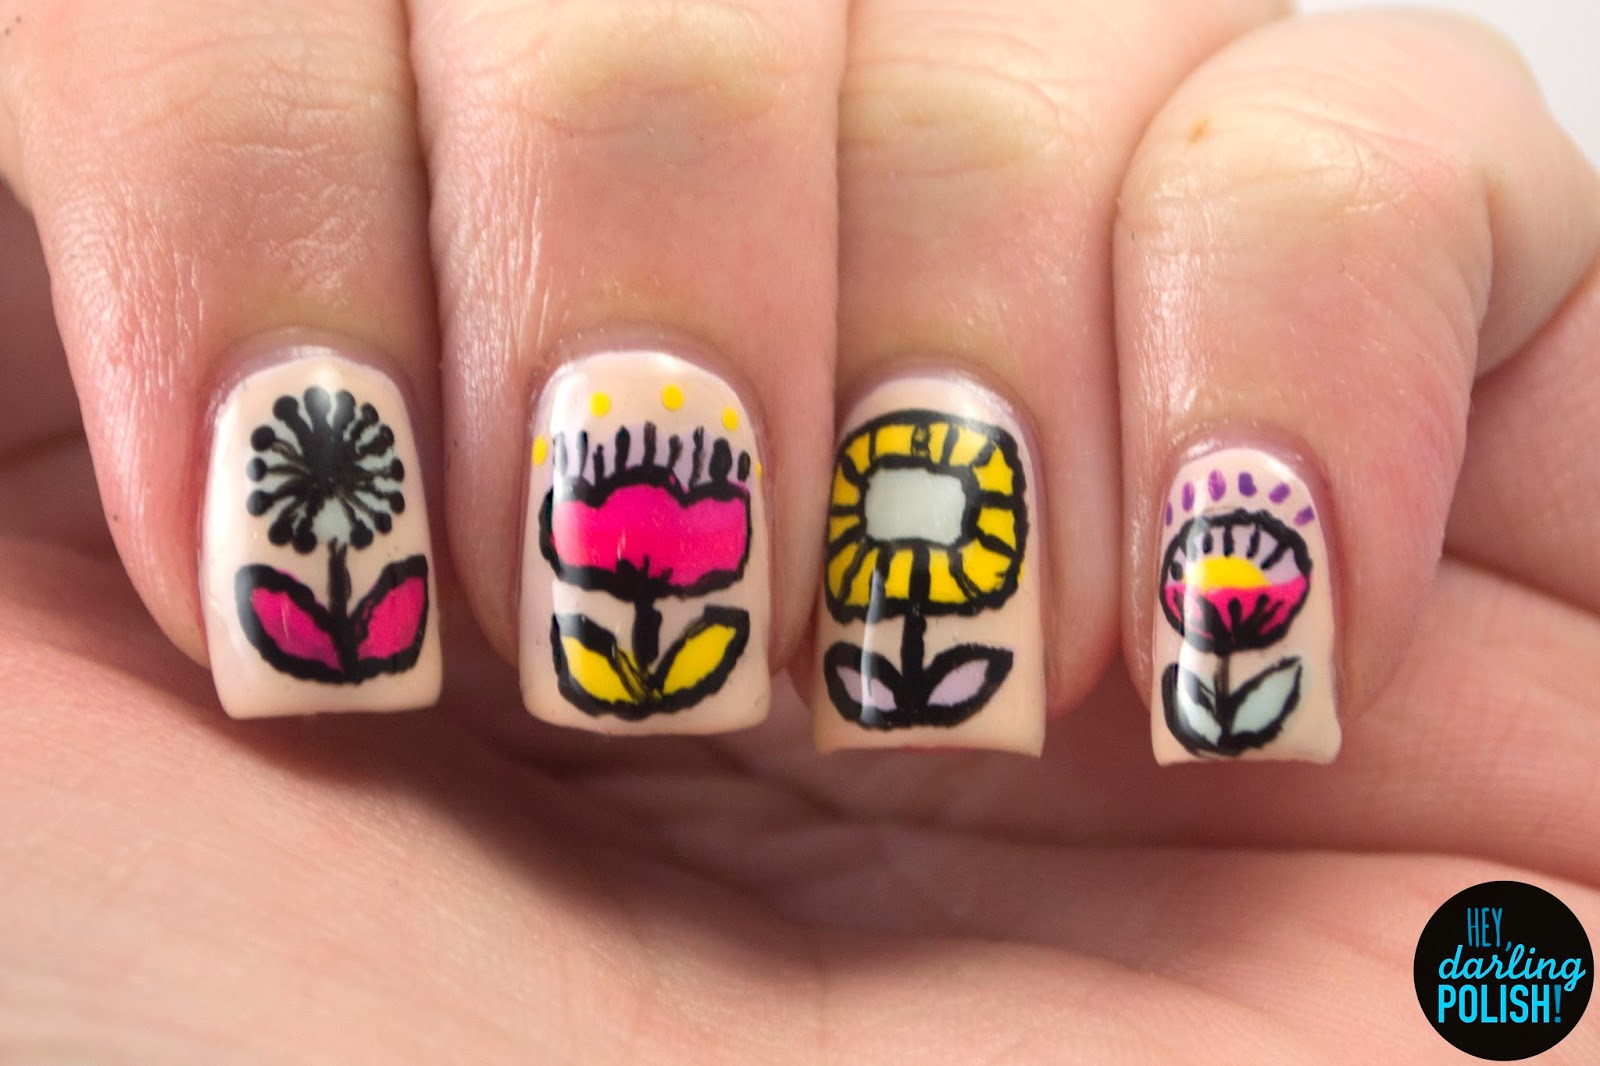 nails, nail art, nail polish, polish, golden oldie thursdays, flowers, hey darling polish, challenge, vintage, retro, pattern